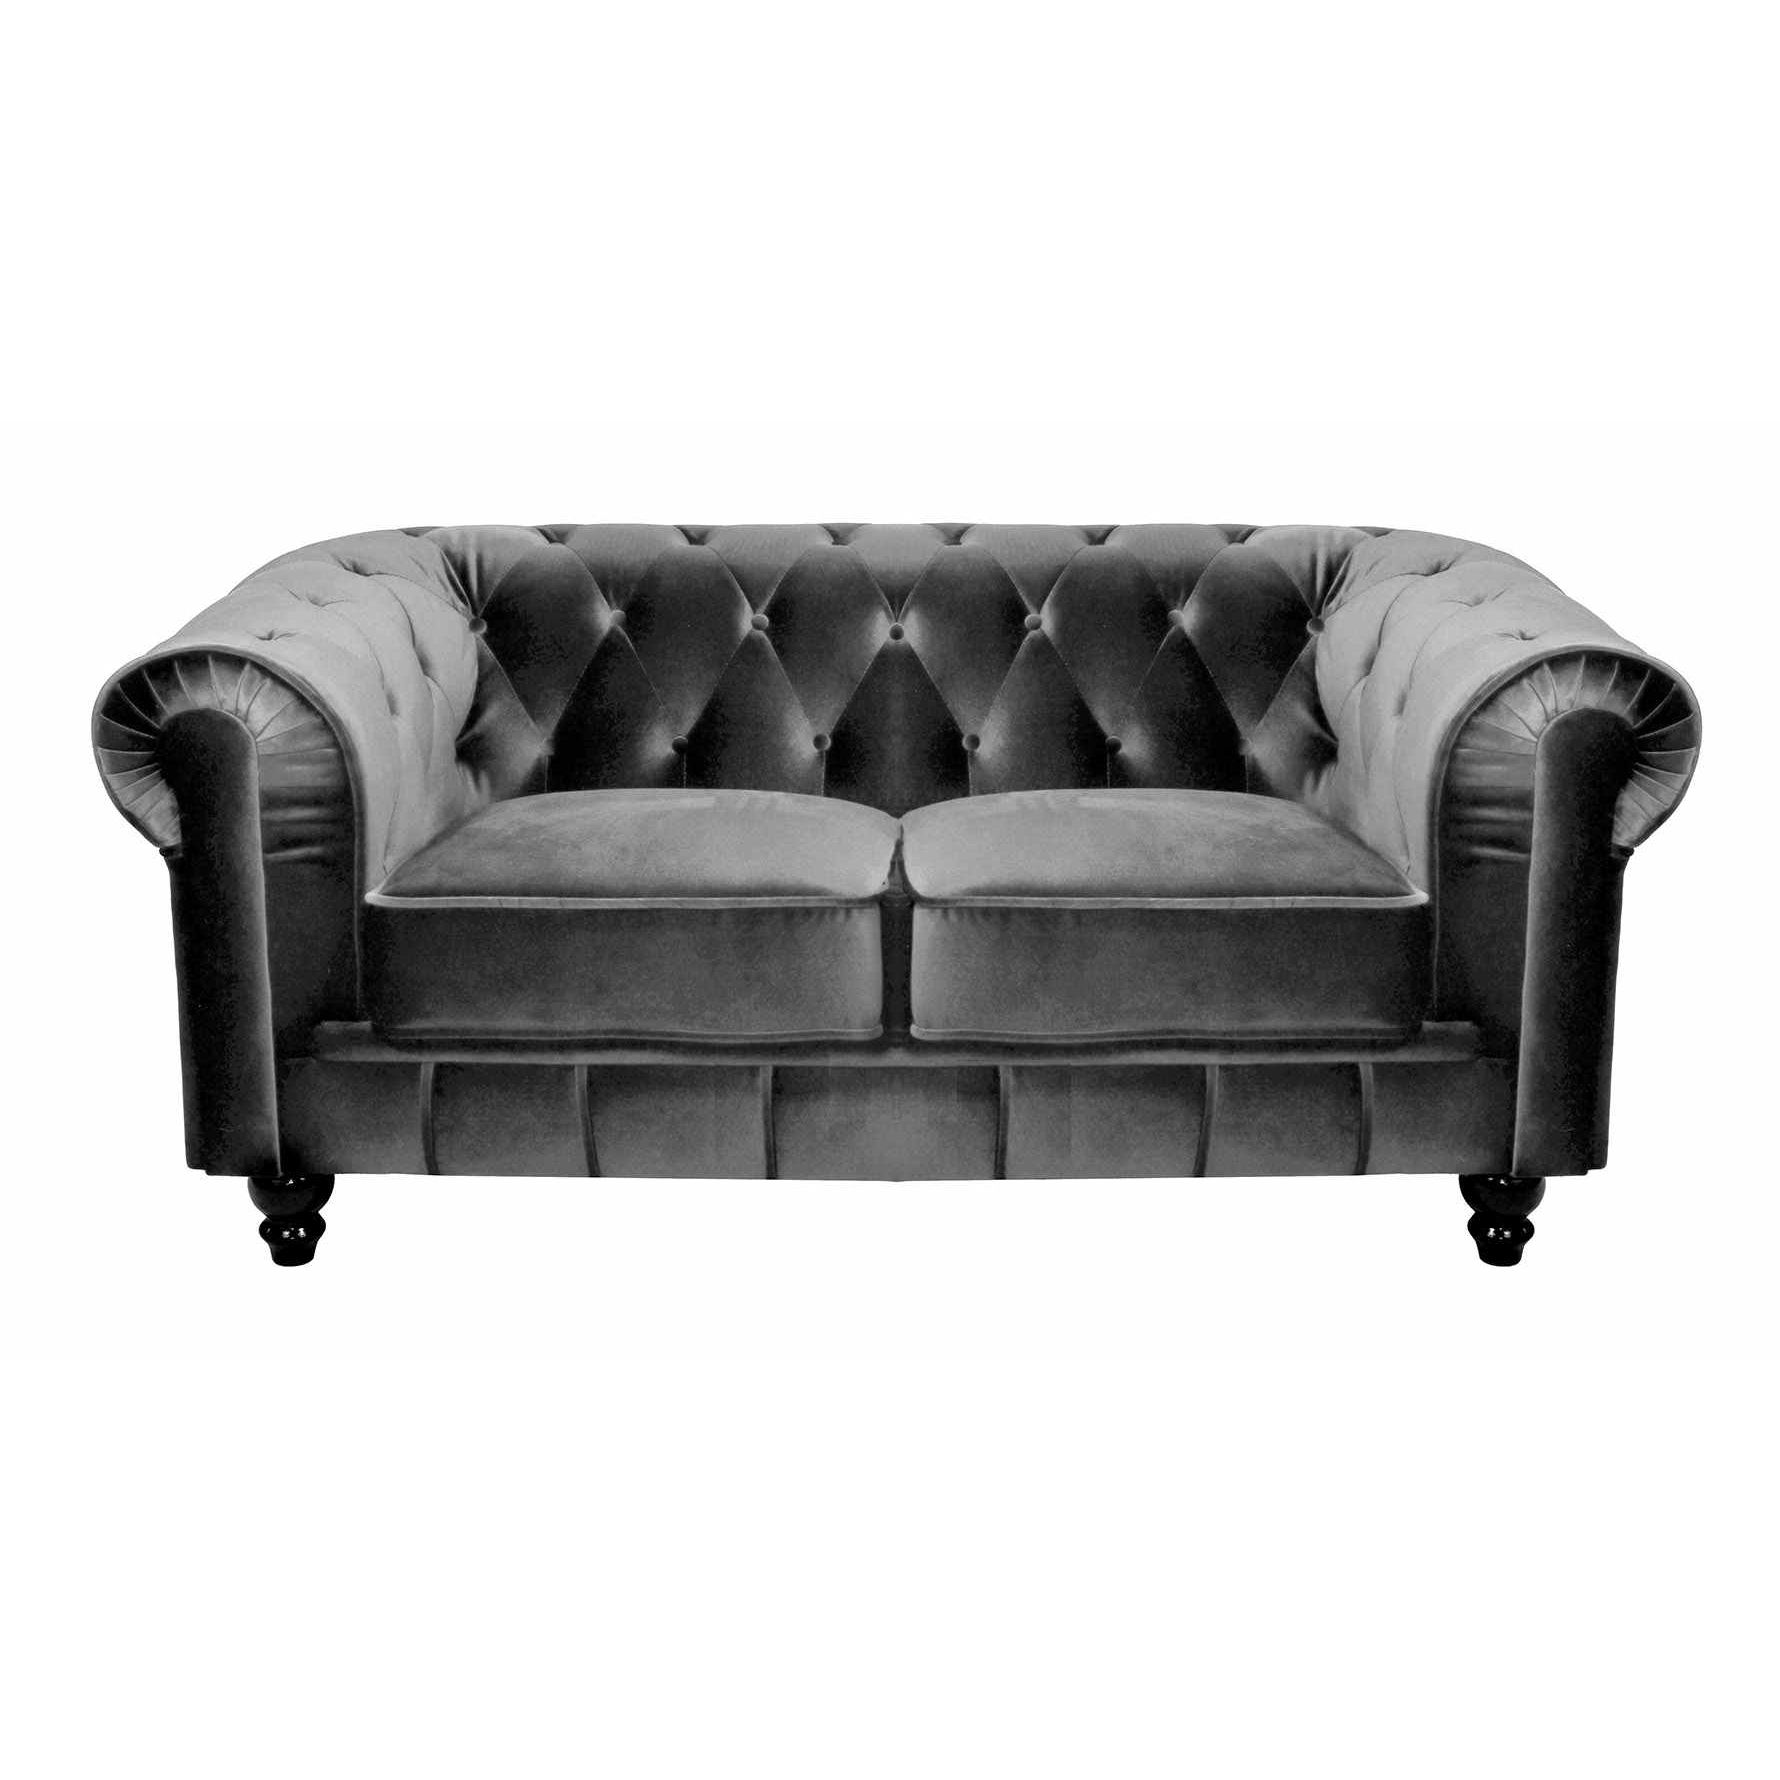 Deco in paris canape 2 places velours gris chesterfield for Canape chesterfield 2 places